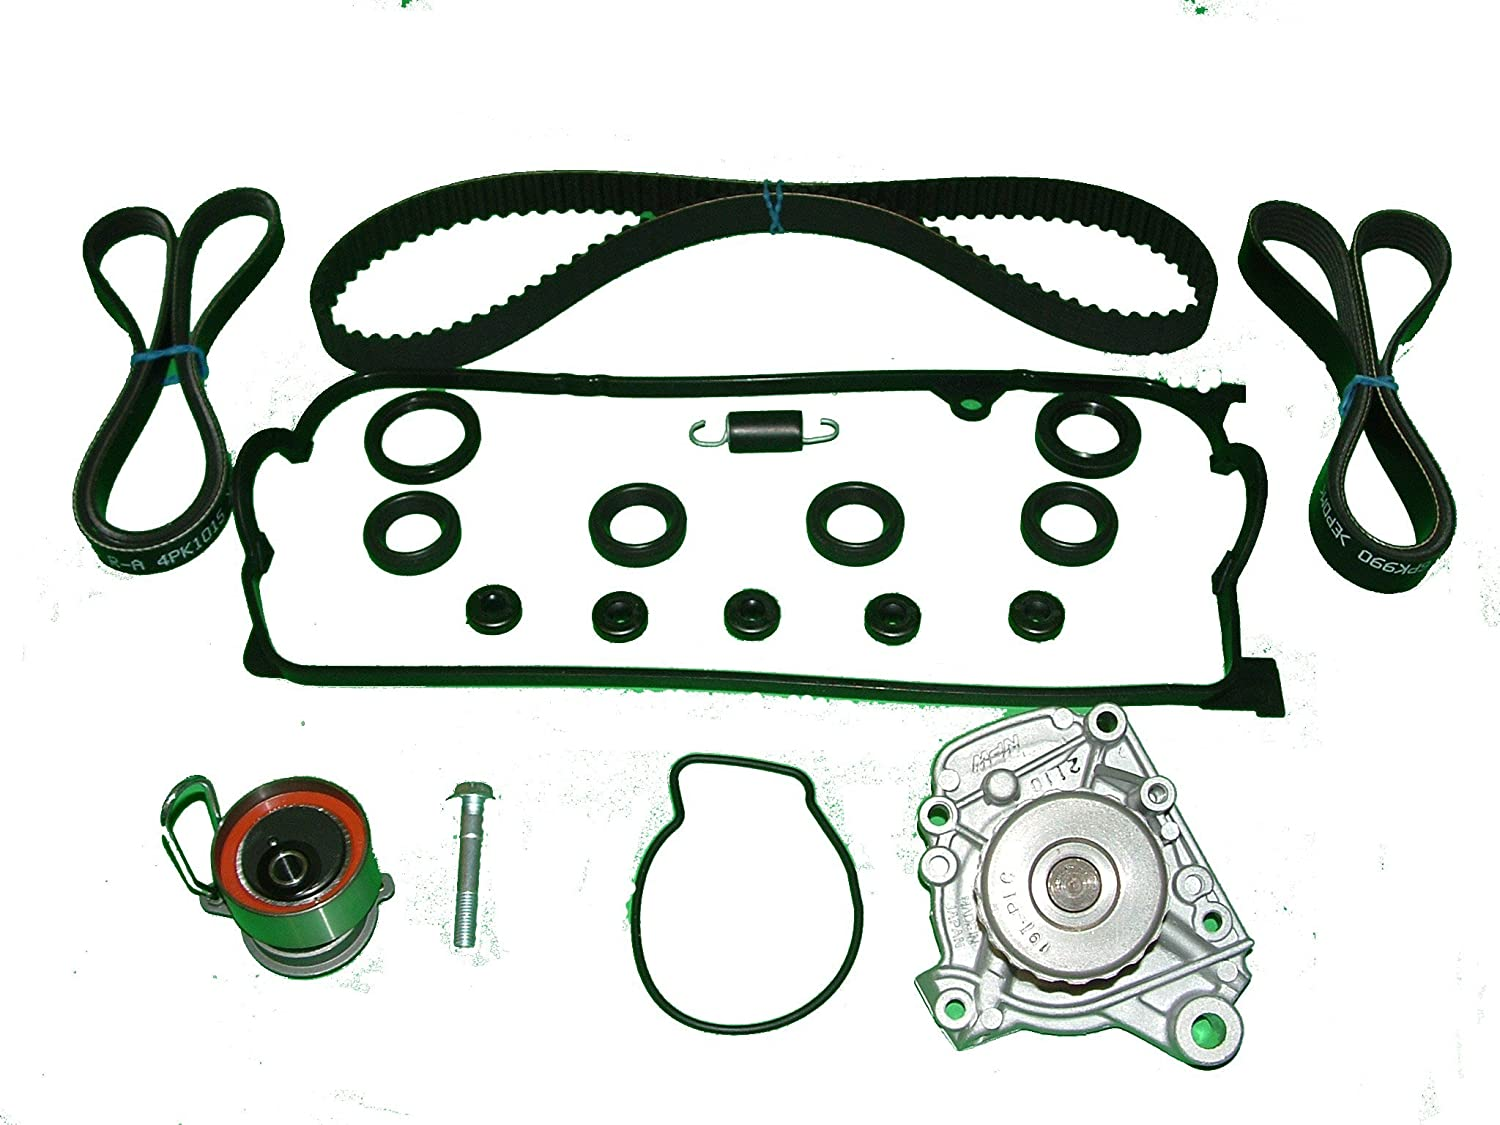 Timing Belt Kit Honda Civic 2001 To 2005 17 Lx Dx Ex On All Engines Except Vtec The Adjuster Arm Must Be Locked In Automotive